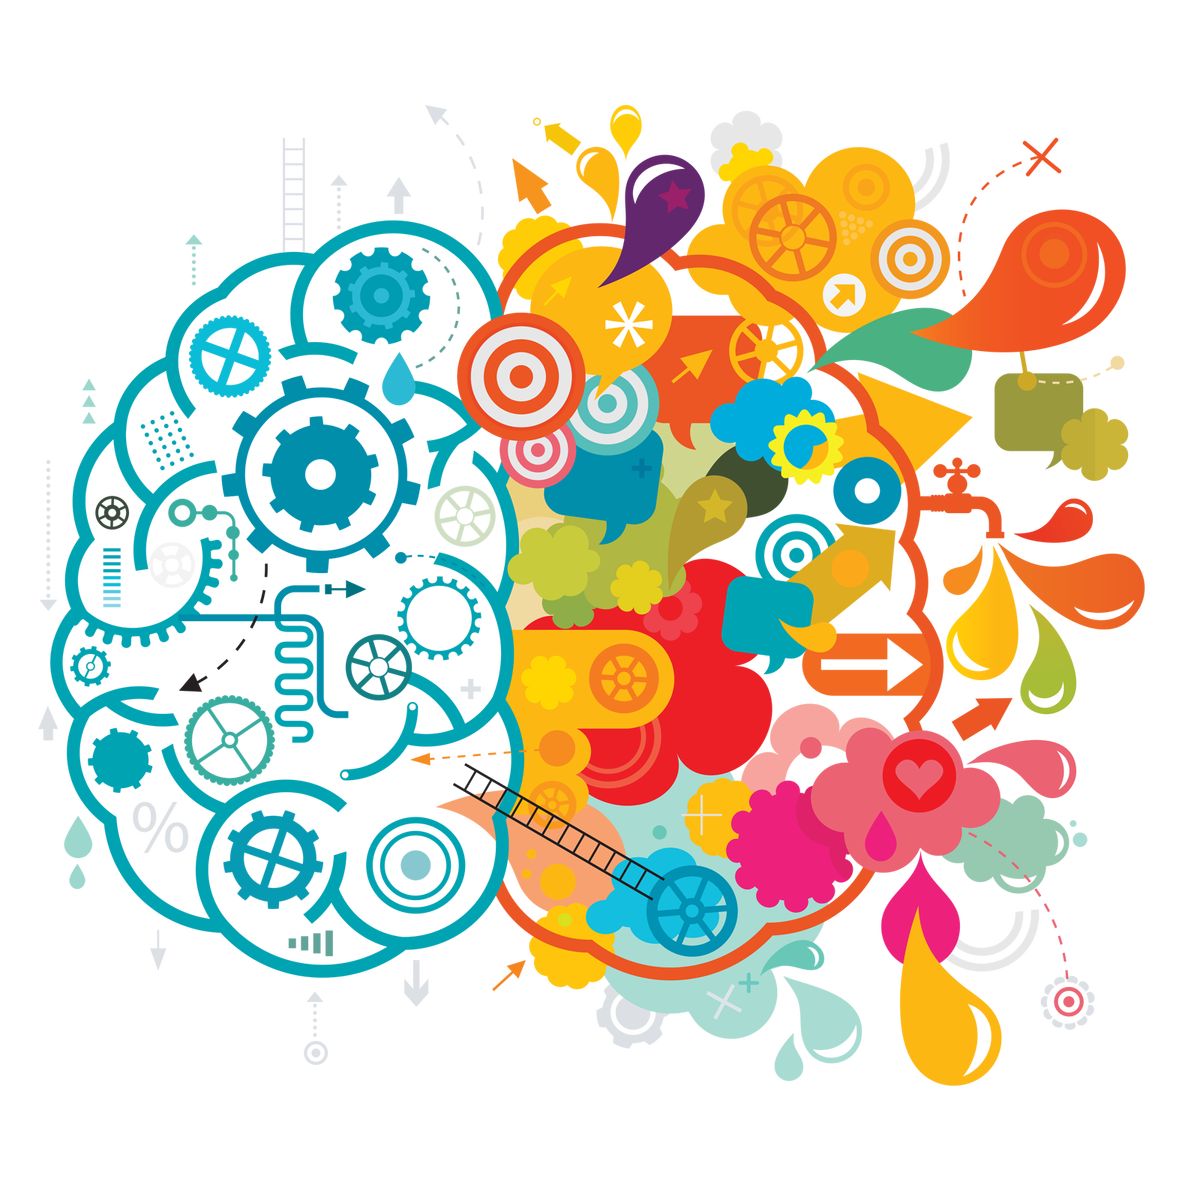 collection of mind. Design clipart creative